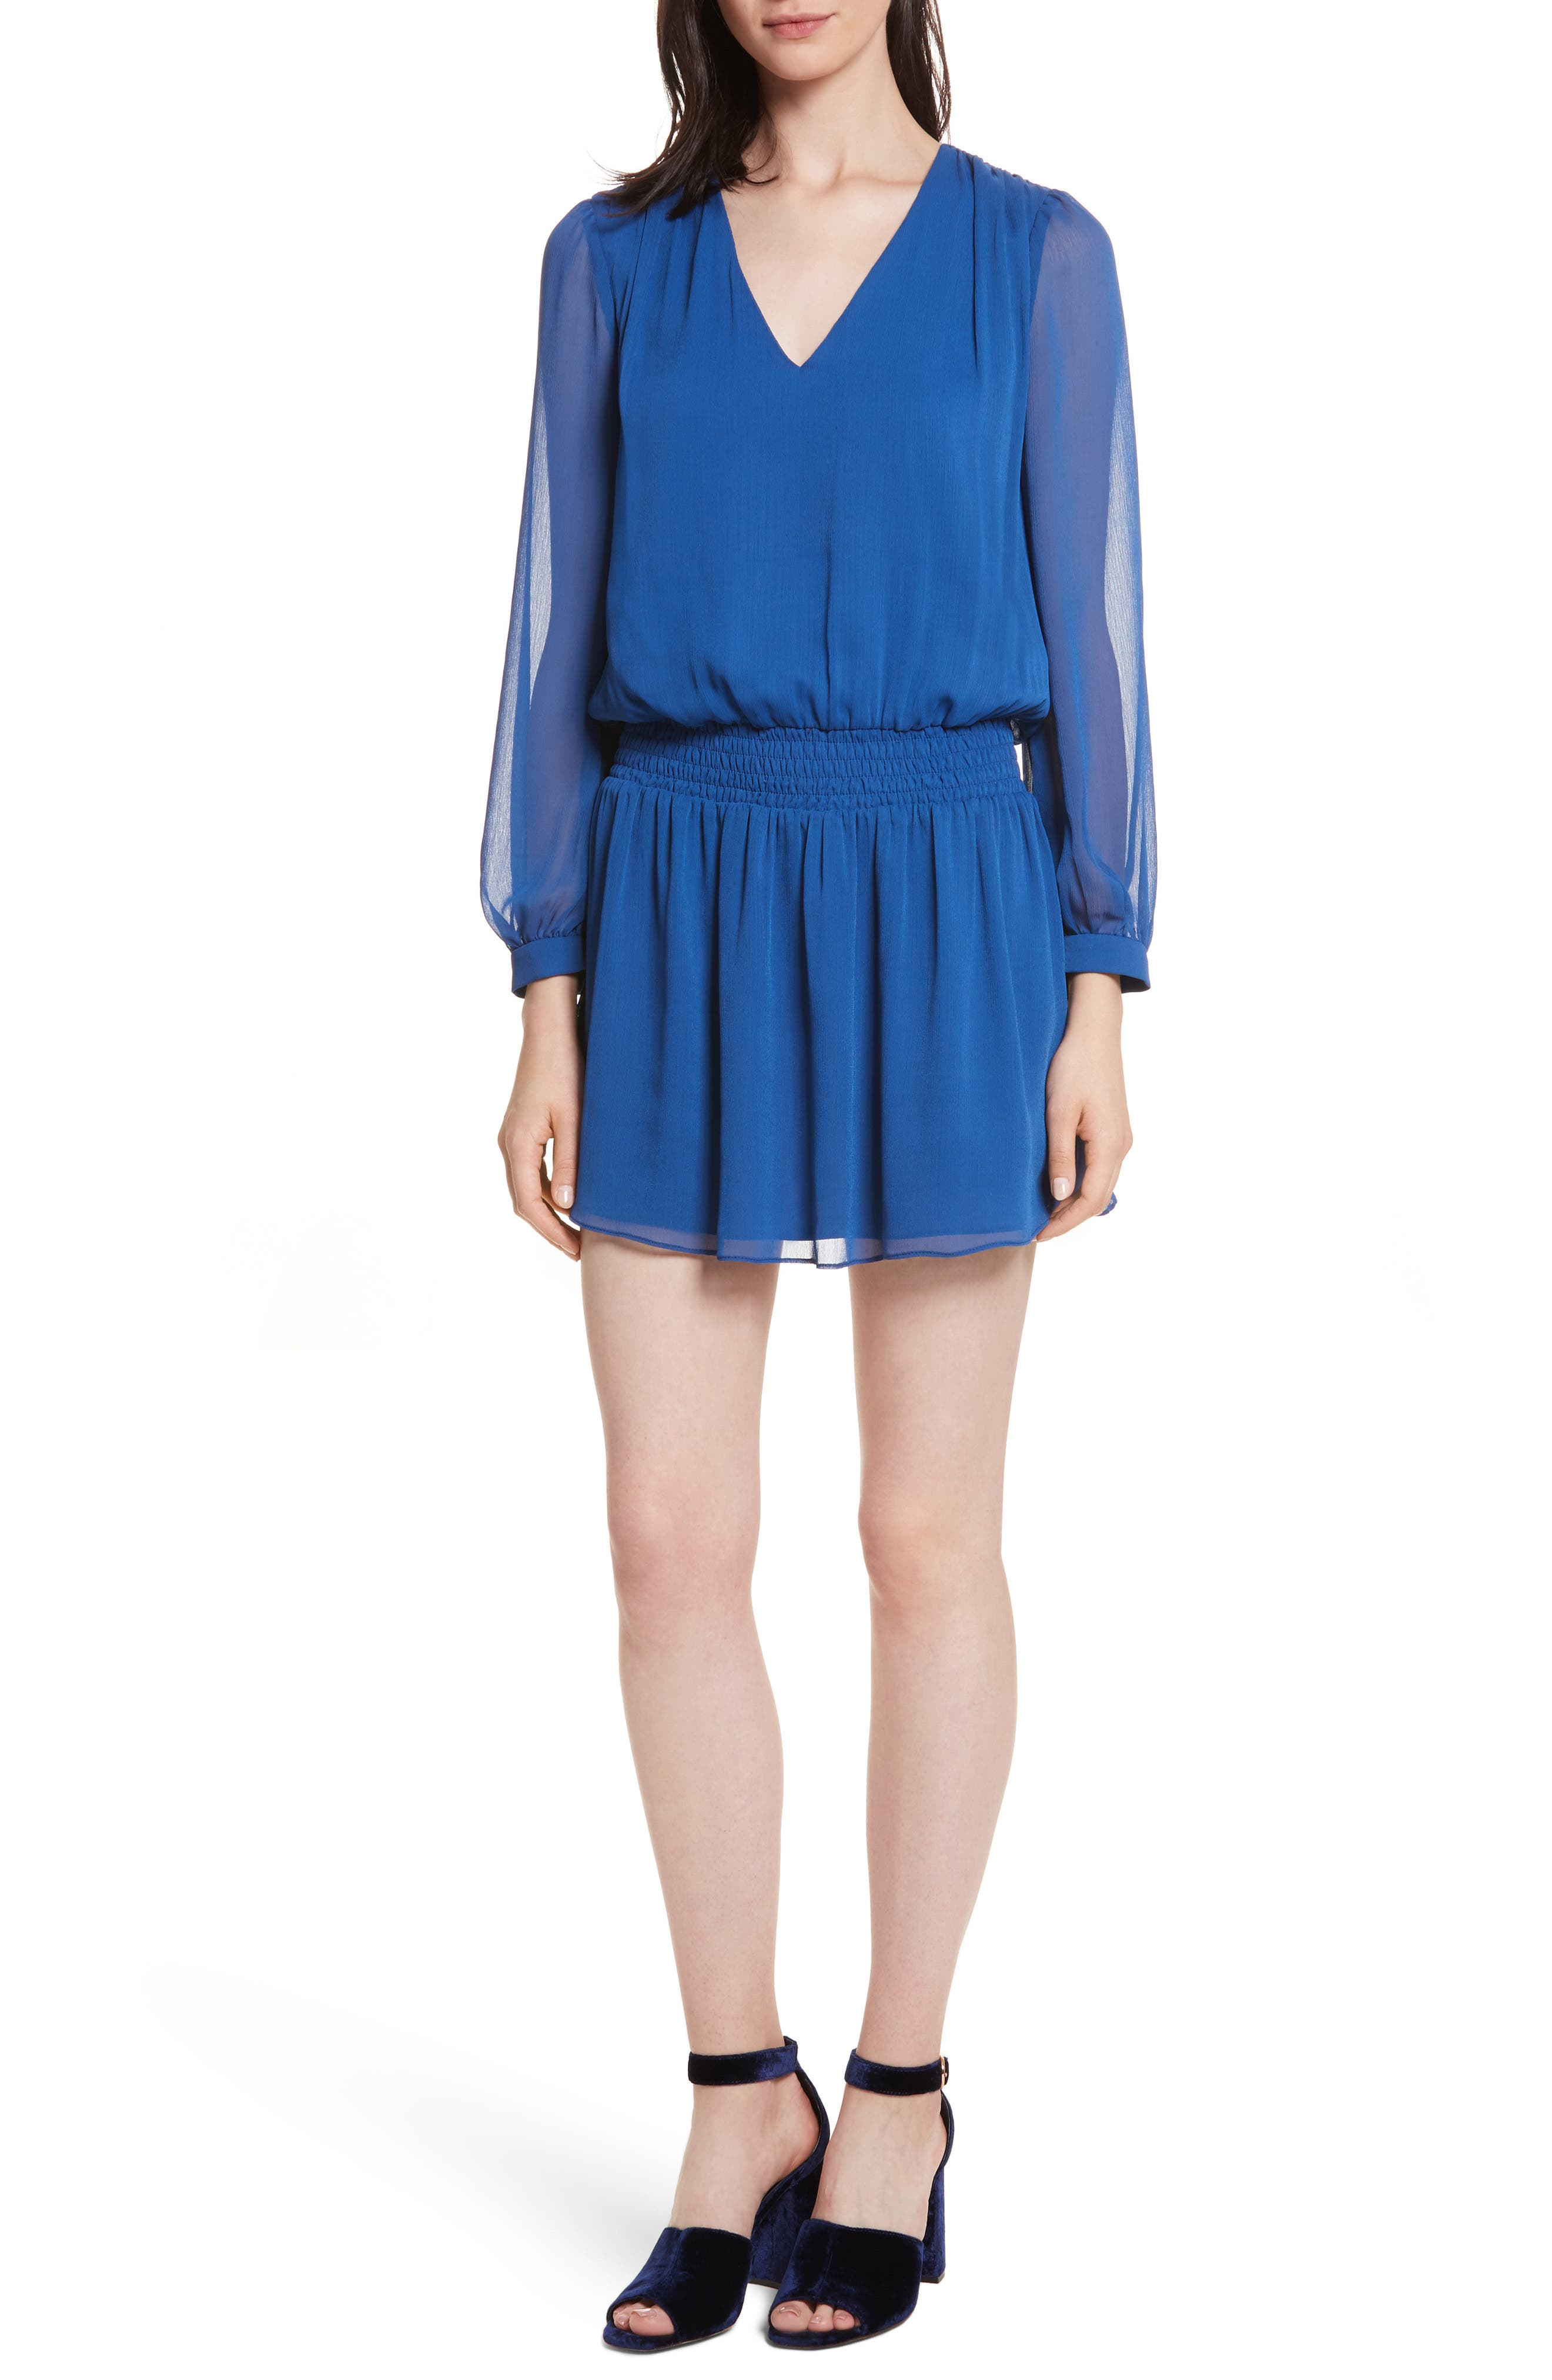 Alternate Image 1 Selected - Alice + Olivia Adaline Smocked Waist Minidress